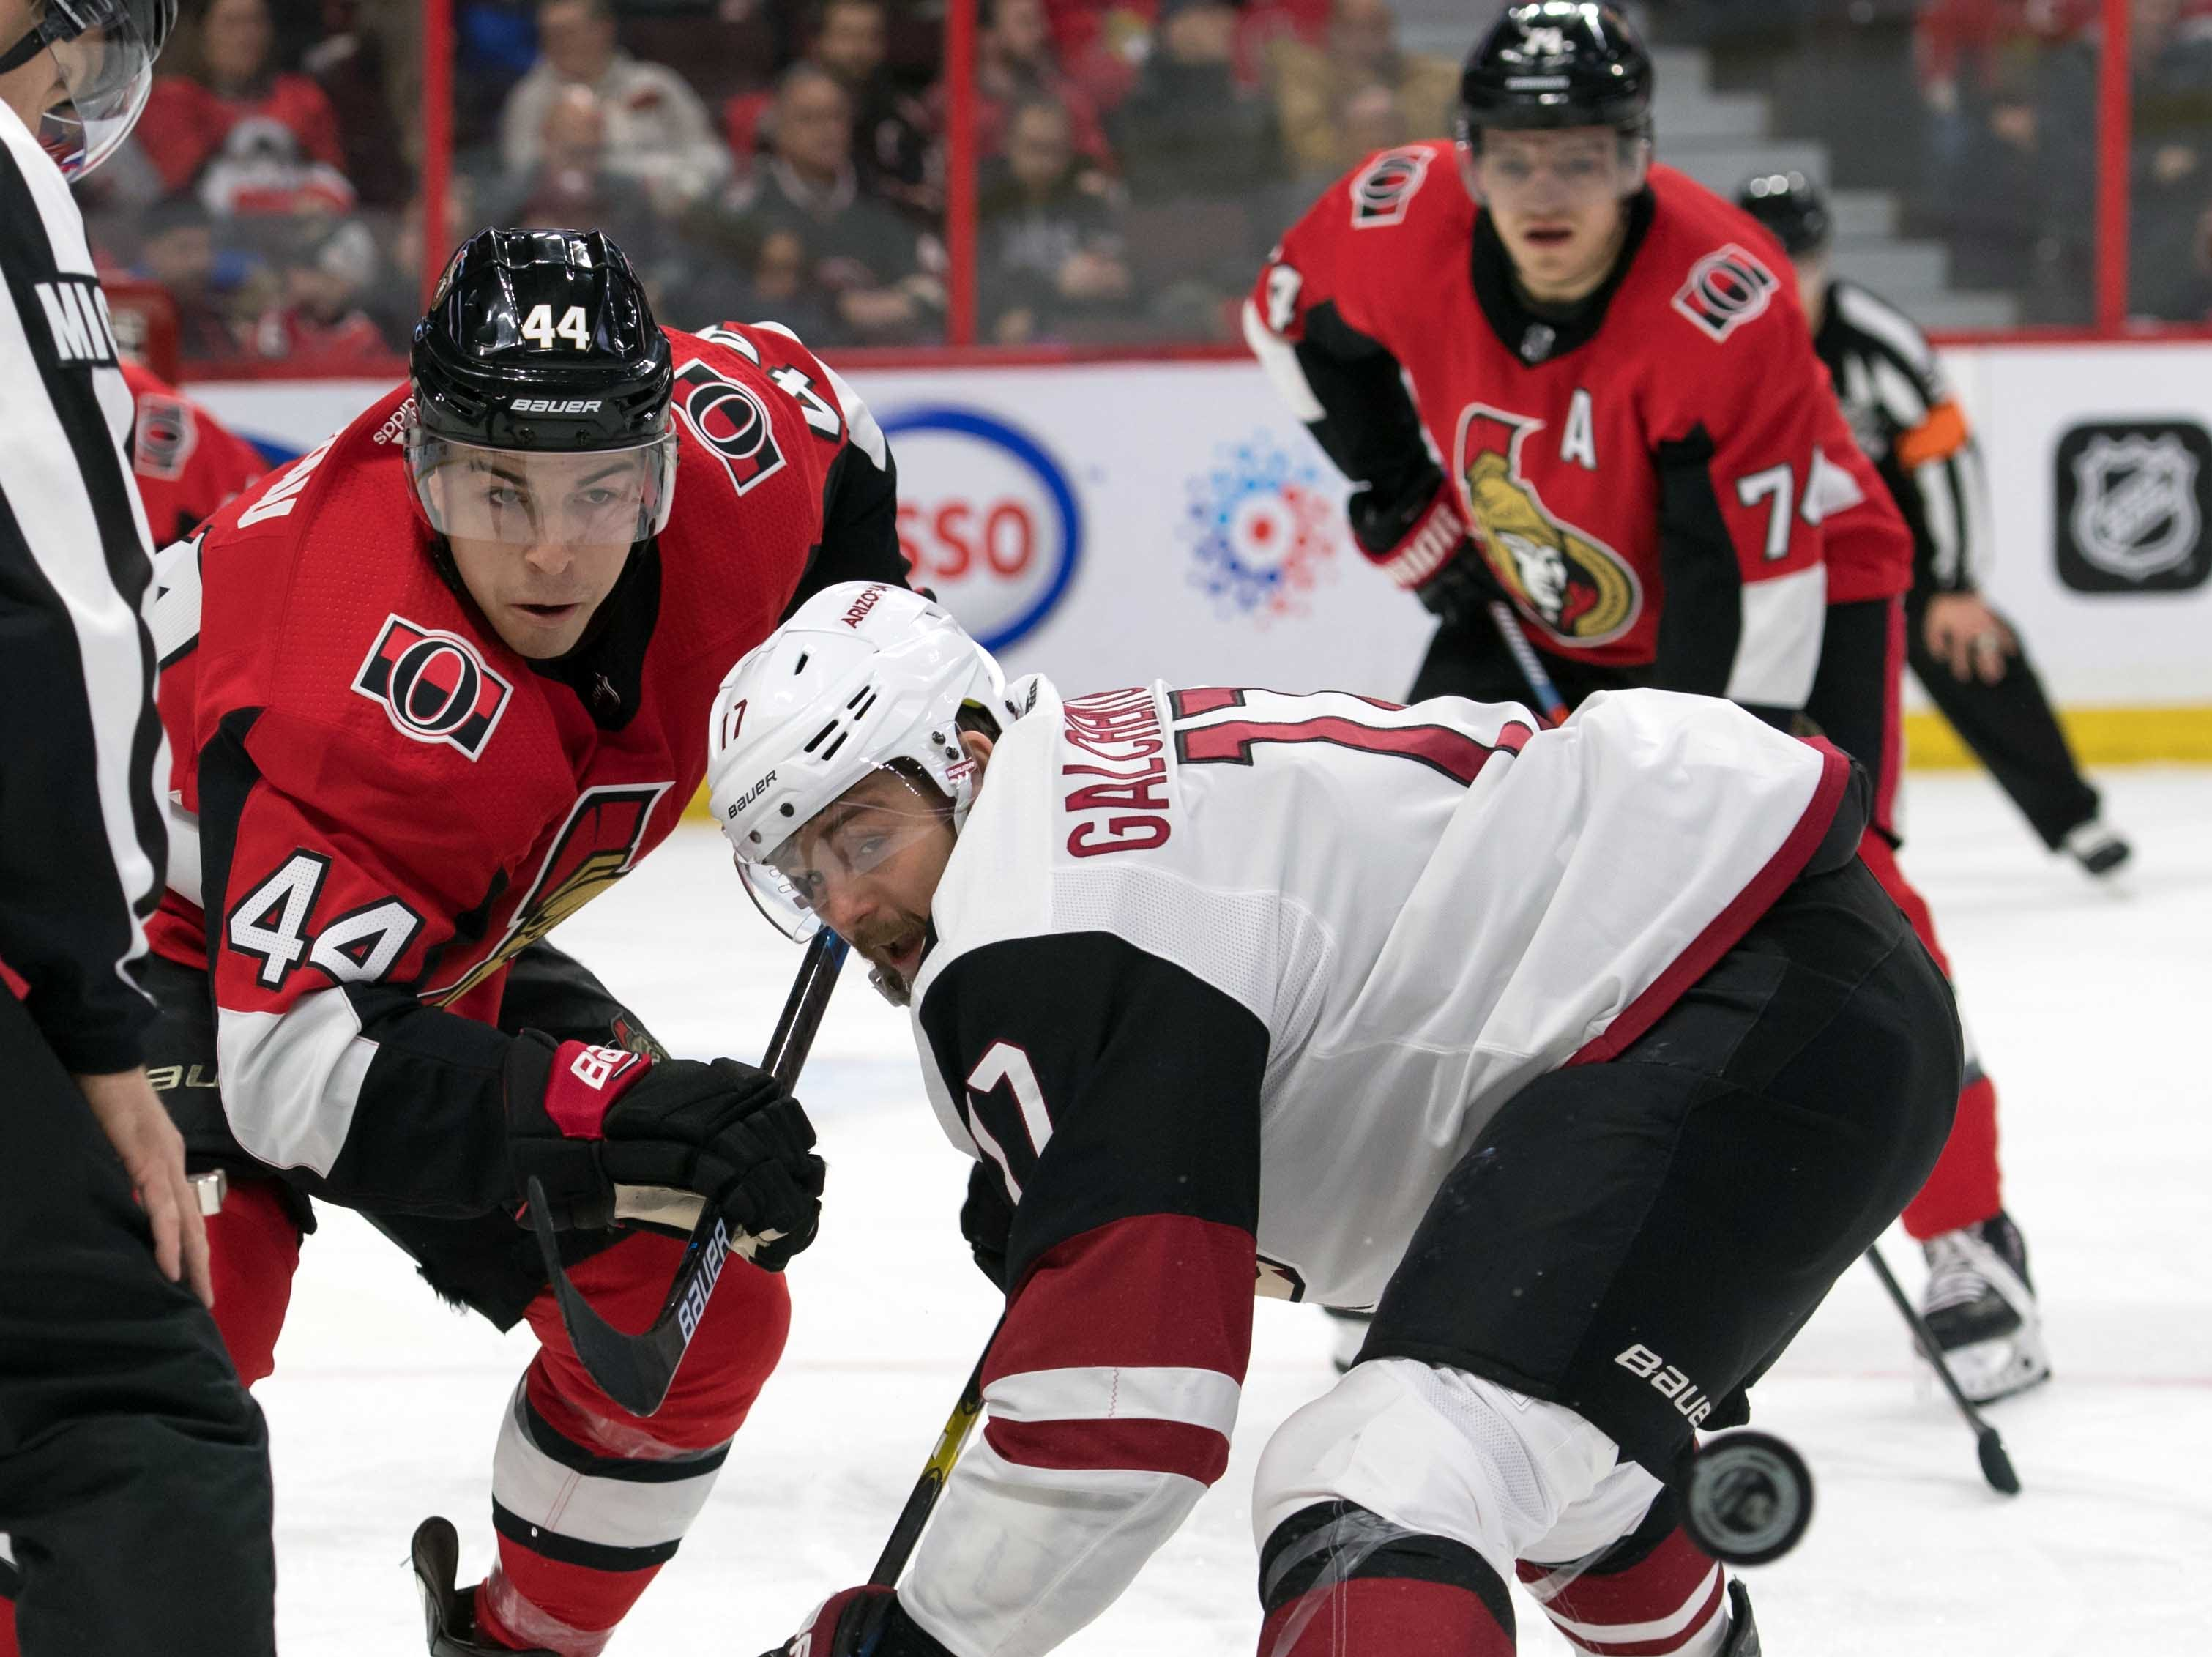 Jan 22, 2019; Ottawa, Ontario, CAN; Ottawa Senators center Jean-Gabriel Pageau (44) faces off against Arizona Coyotes center Alex Galchenyuk (17) in the first period at the Canadian Tire Centre. Mandatory Credit: Marc DesRosiers-USA TODAY Sports